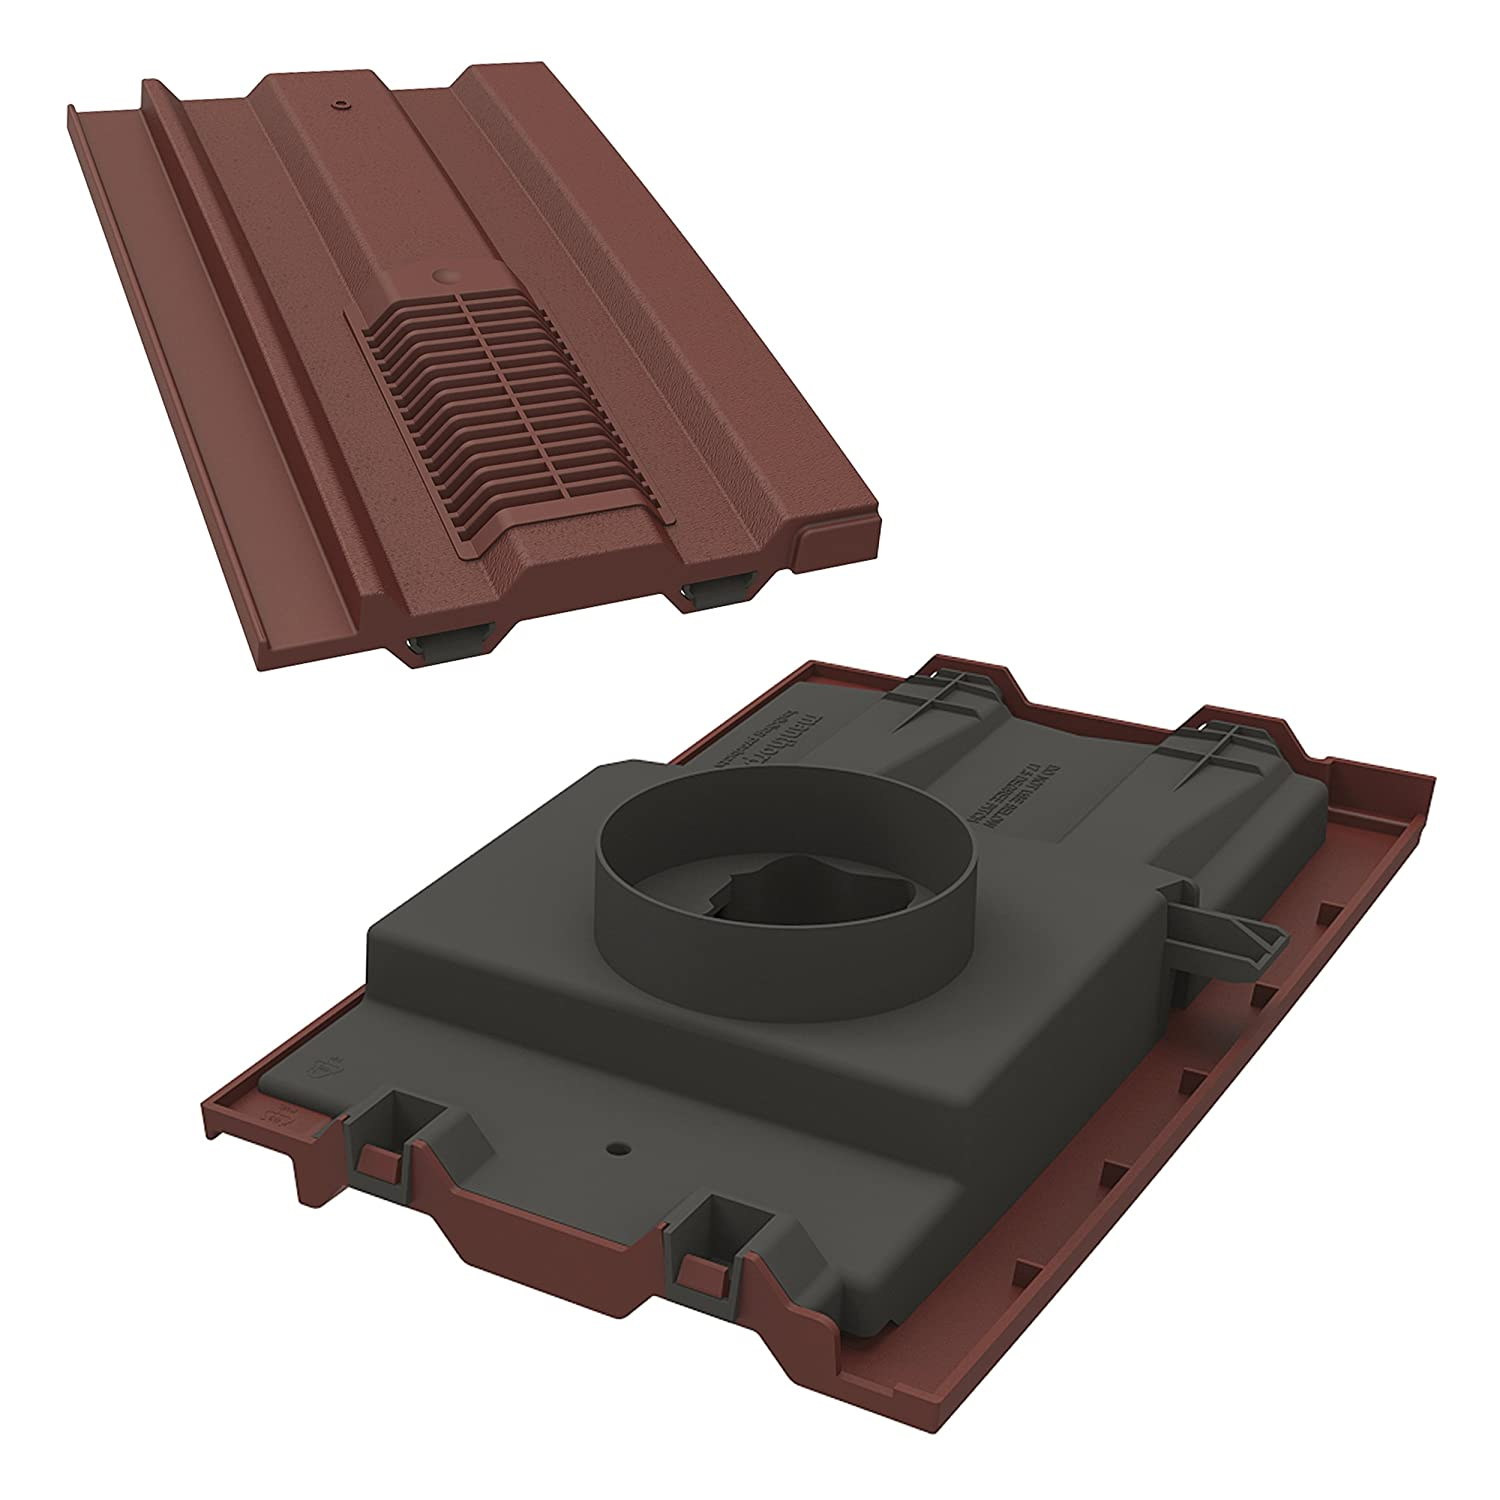 Manthorpe Roof Tile Vent With Pipe Adaptor 15' x 9' To Fit Marley Ludlow Plus, Redland 49, Forticrete V2 Antique Red Textured